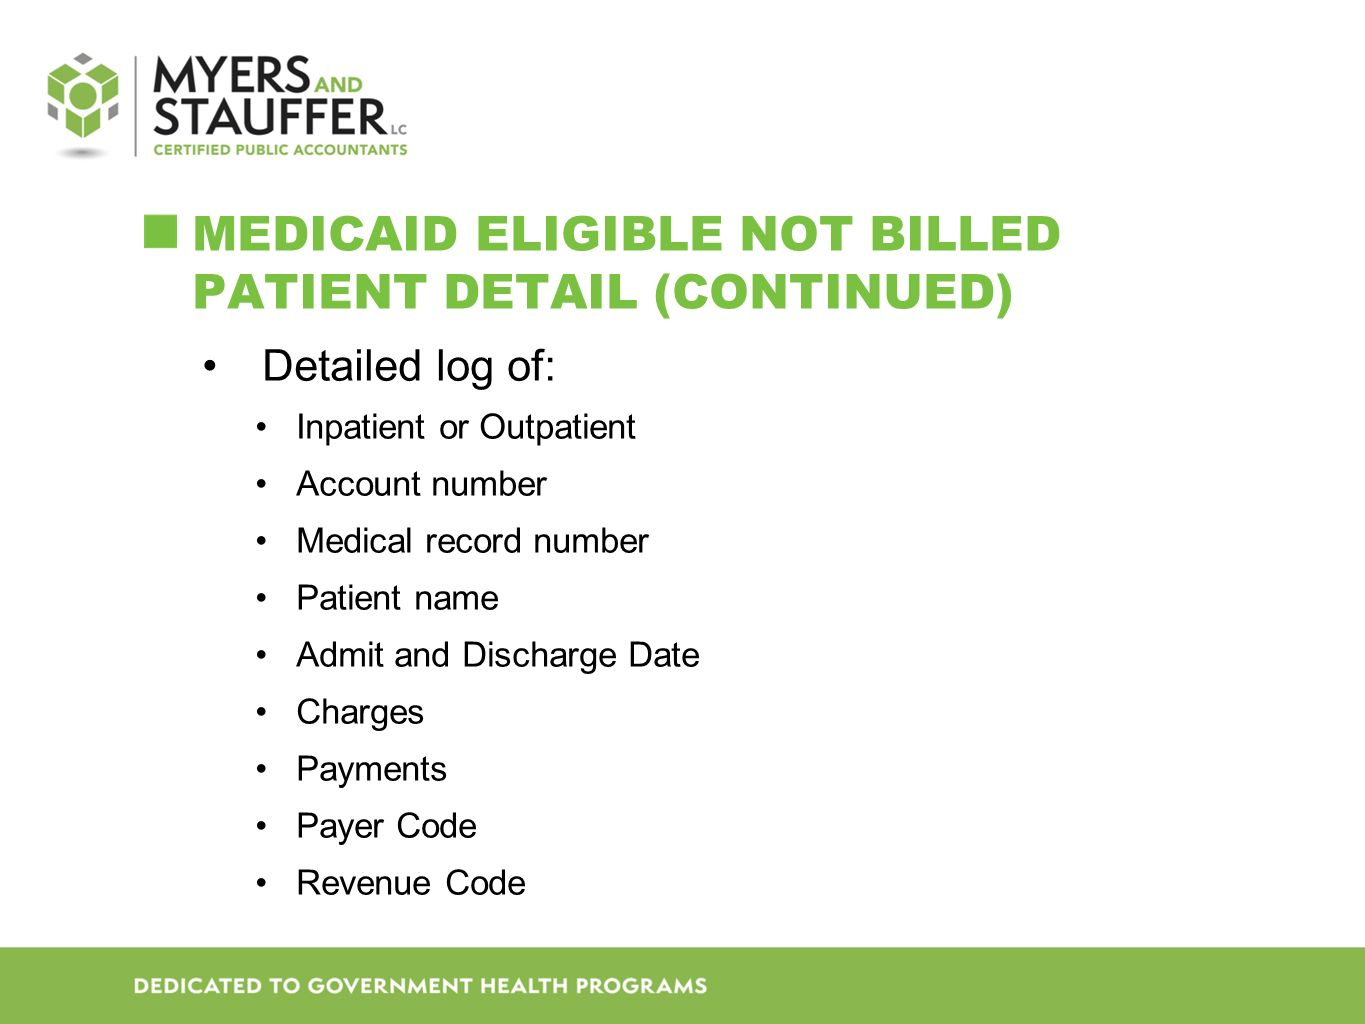 MEDICAID ELIGIBLE NOT BILLED PATIENT DETAIL (CONTINUED) Detailed log of: Inpatient or Outpatient Account number Medical record number Patient name Admit and Discharge Date Charges Payments Payer Code Revenue Code